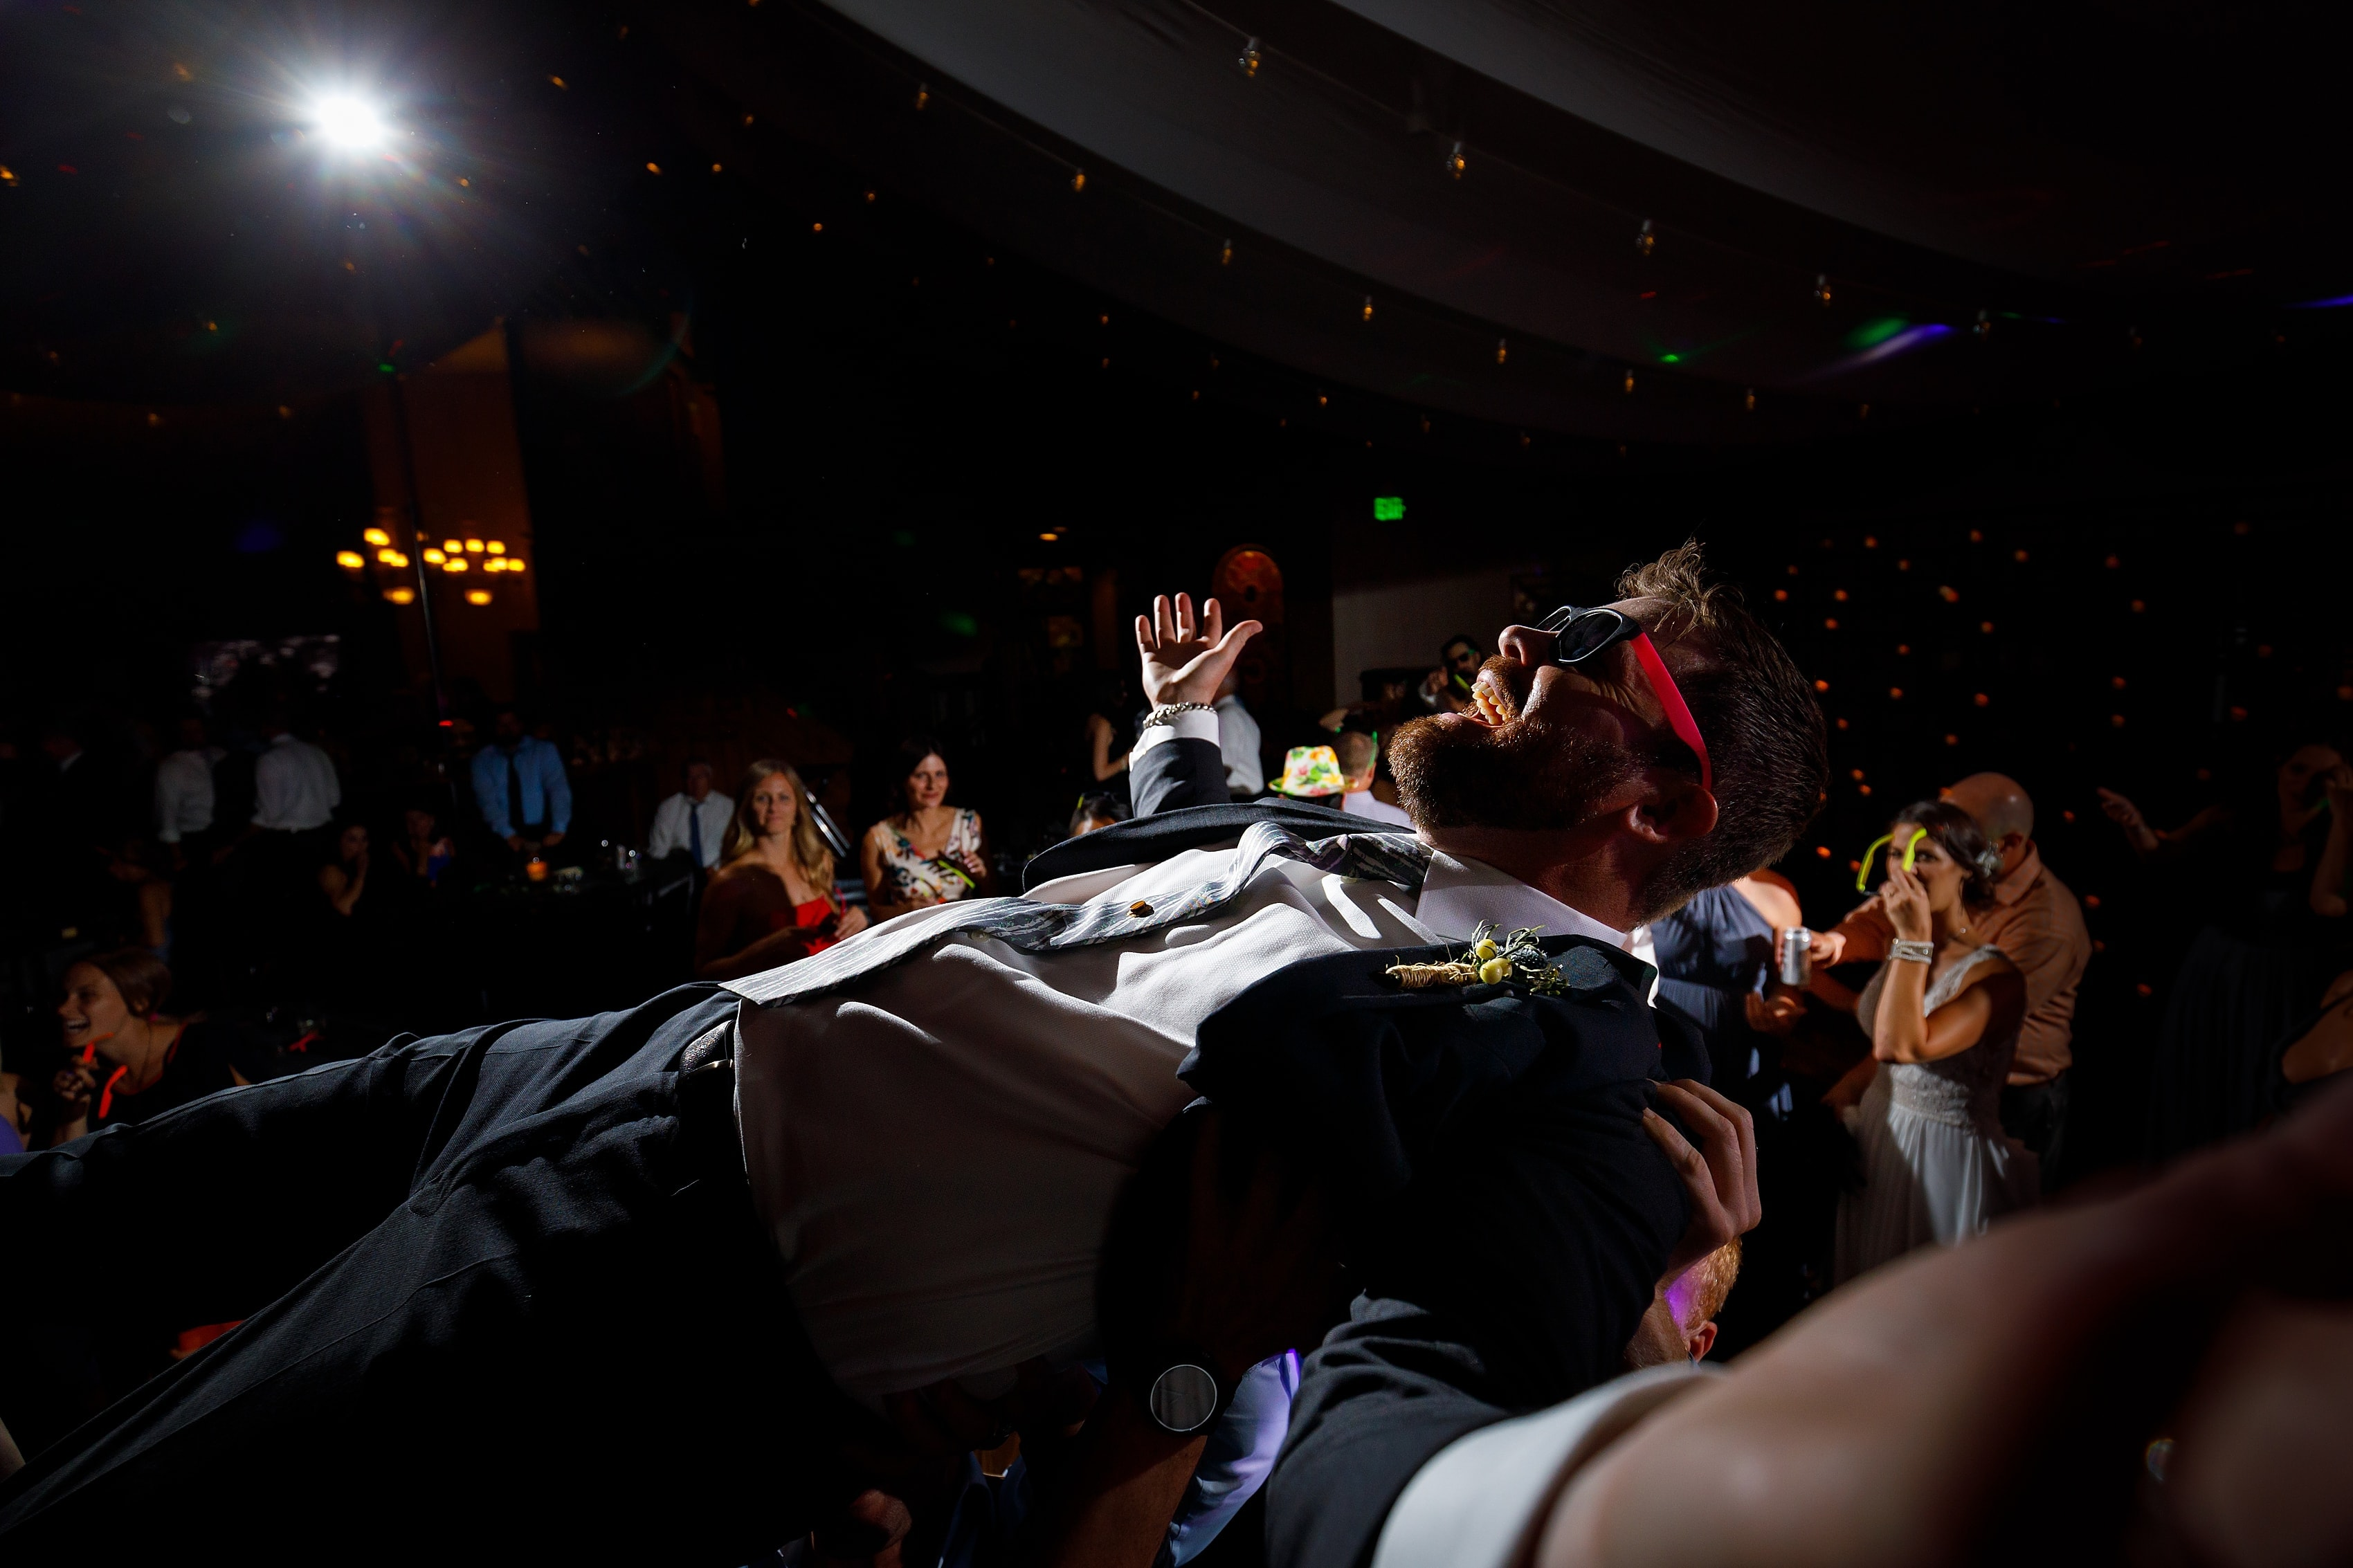 wedding guests dance during wedding reception at Lionsgate Event Center